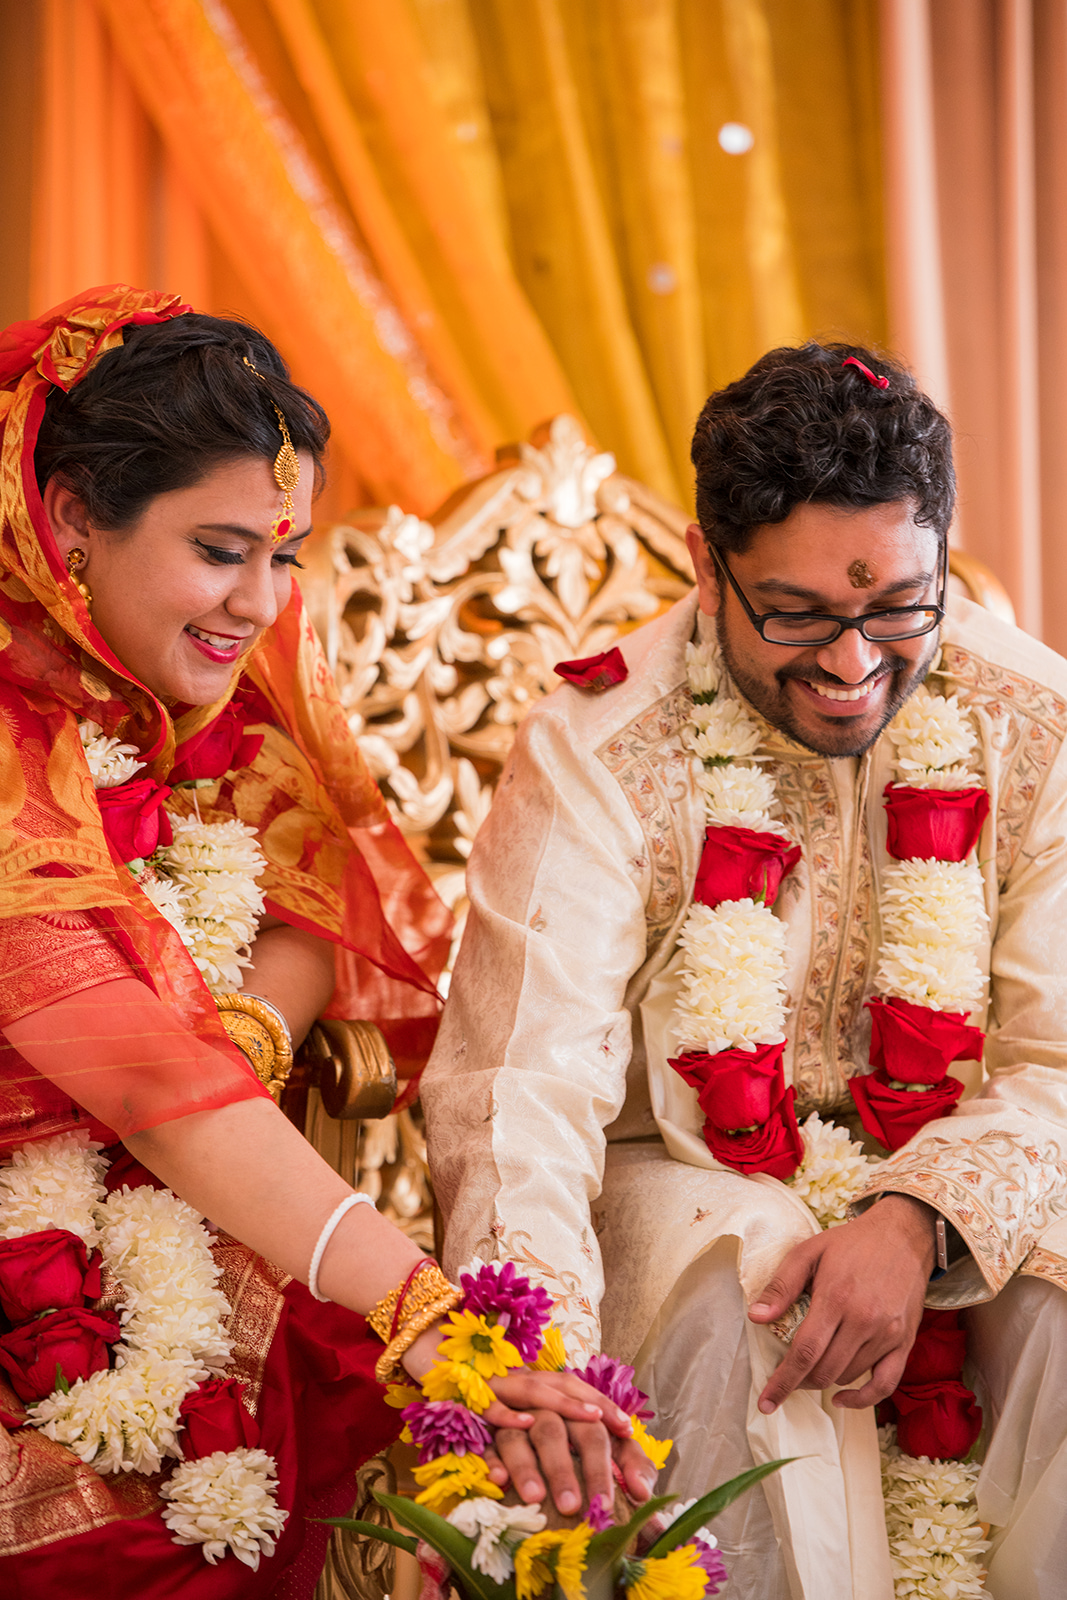 Le Cape Weddings - South Asian Wedding - Ishani and Sidhart - Ceremony-39.jpg